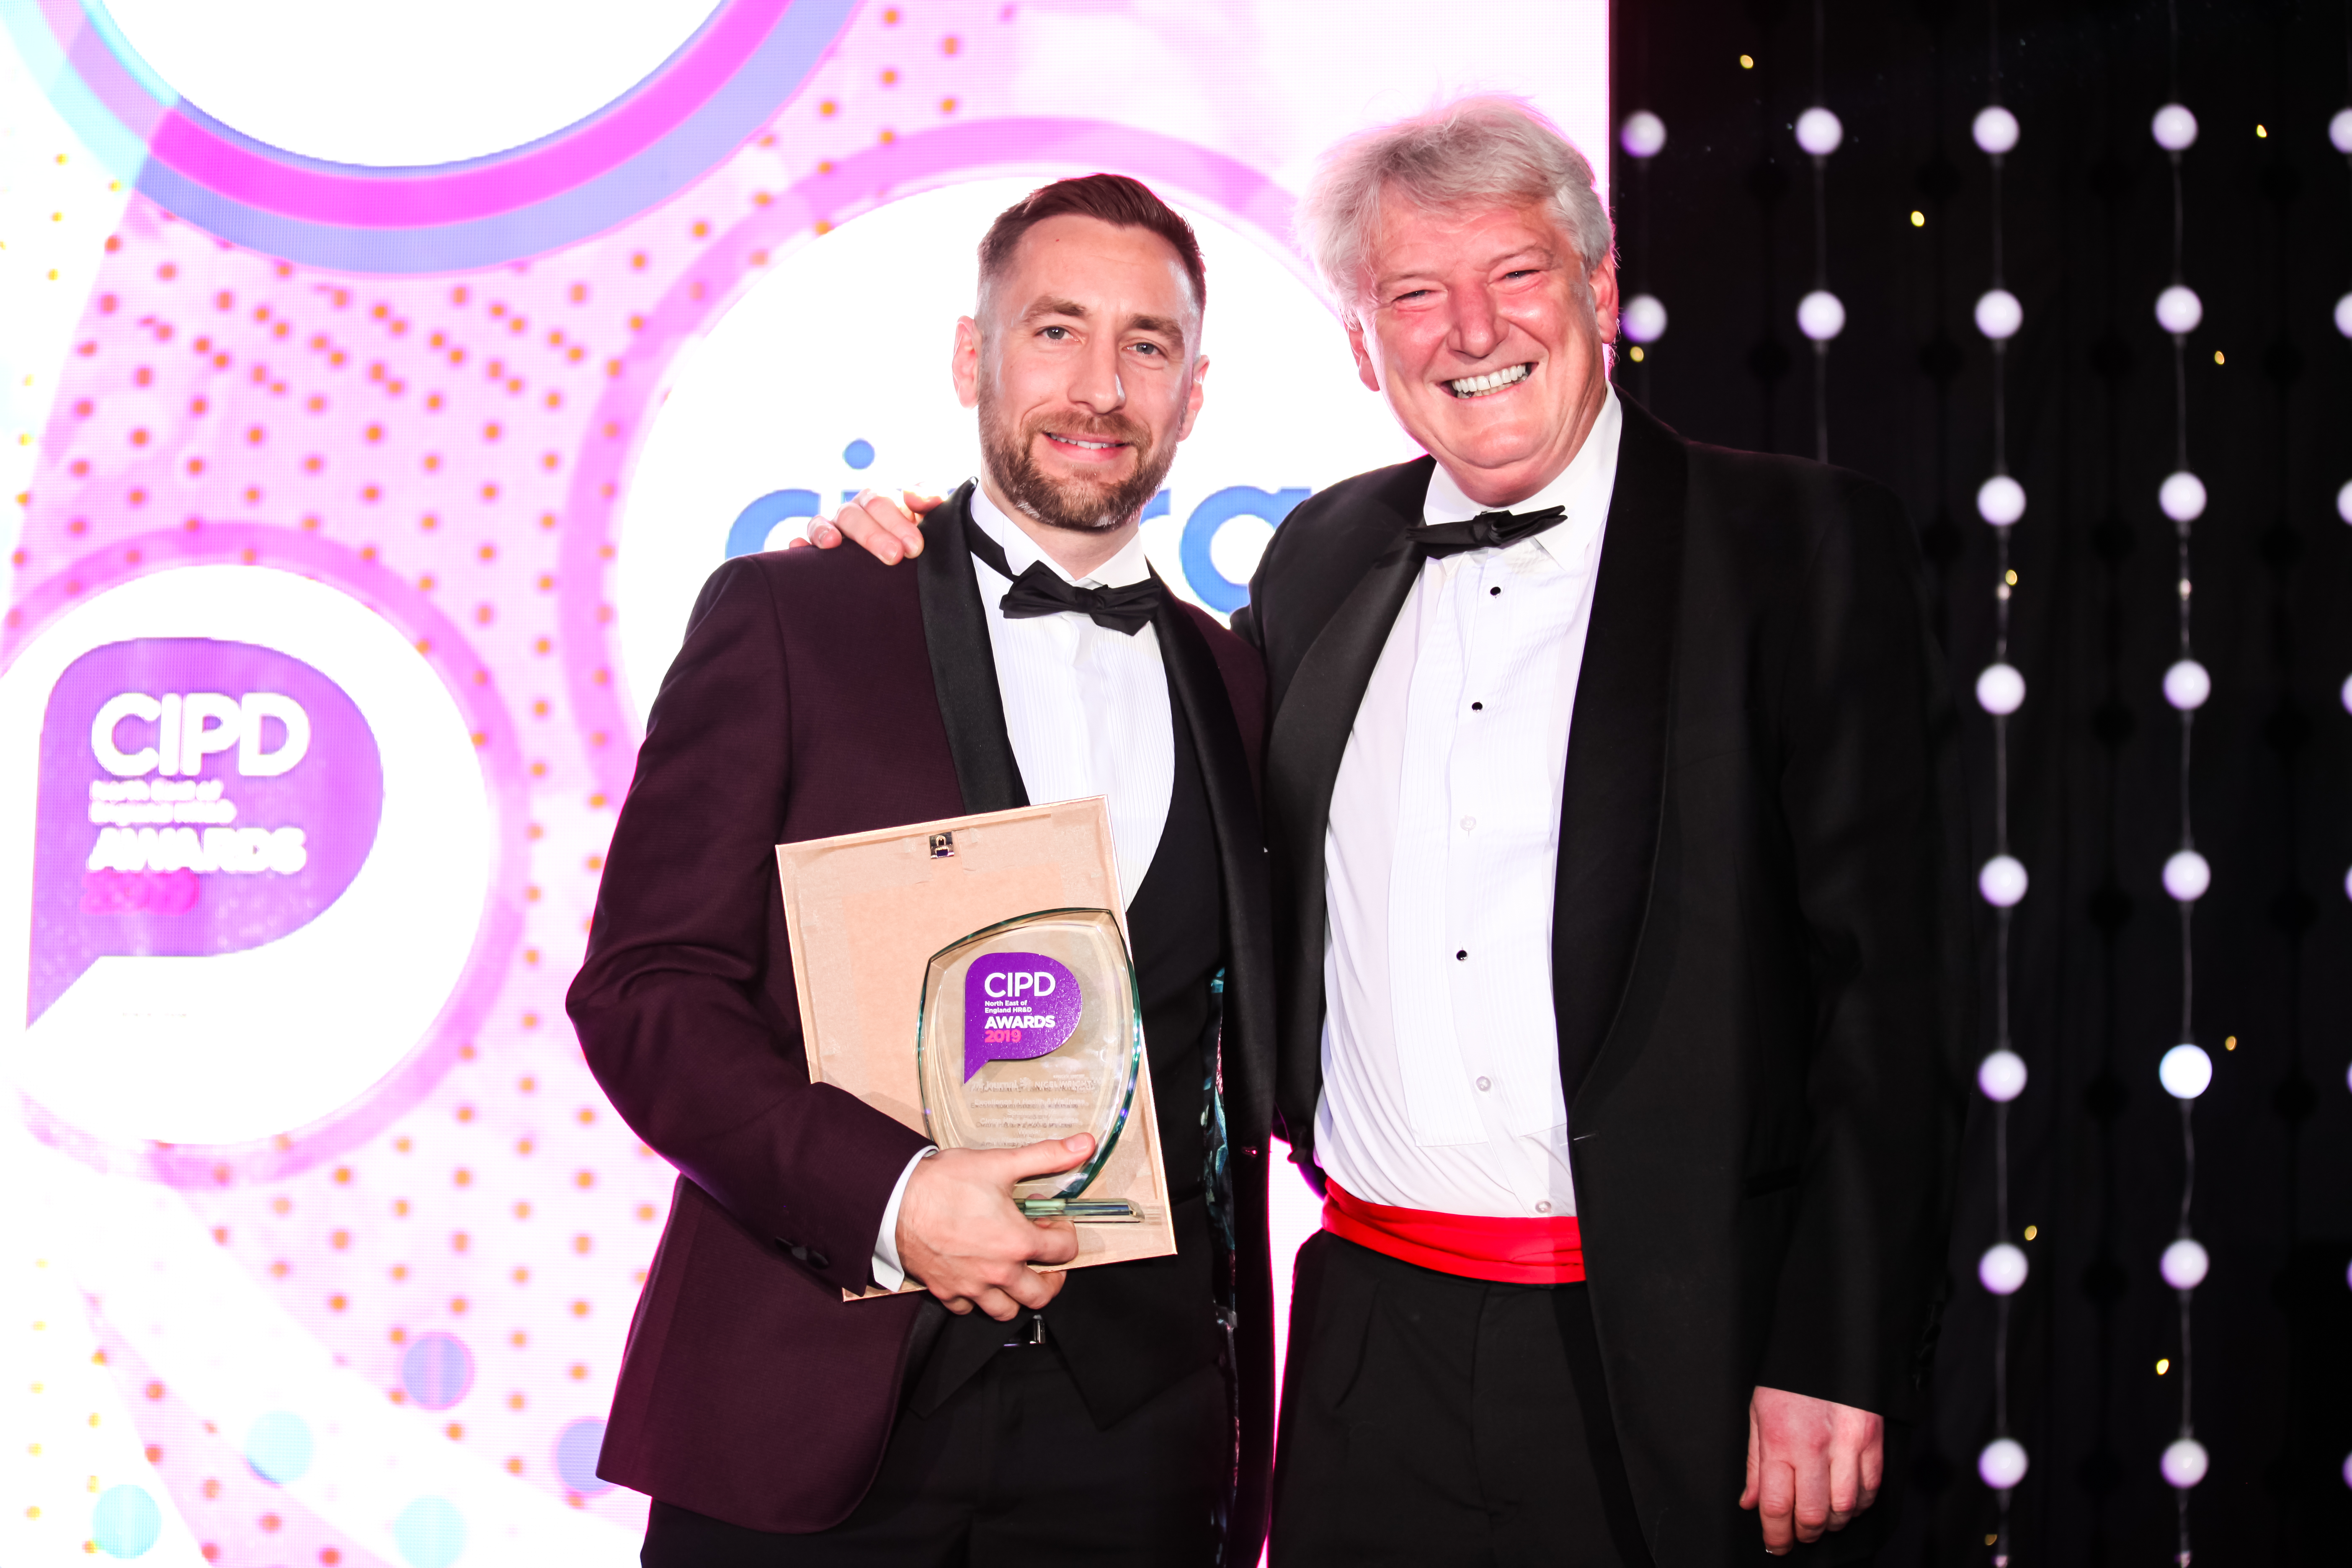 Carsten Staehr, CEO, Cintra HR & Payroll presenting the award to Aioi Nissay Dowa Europe